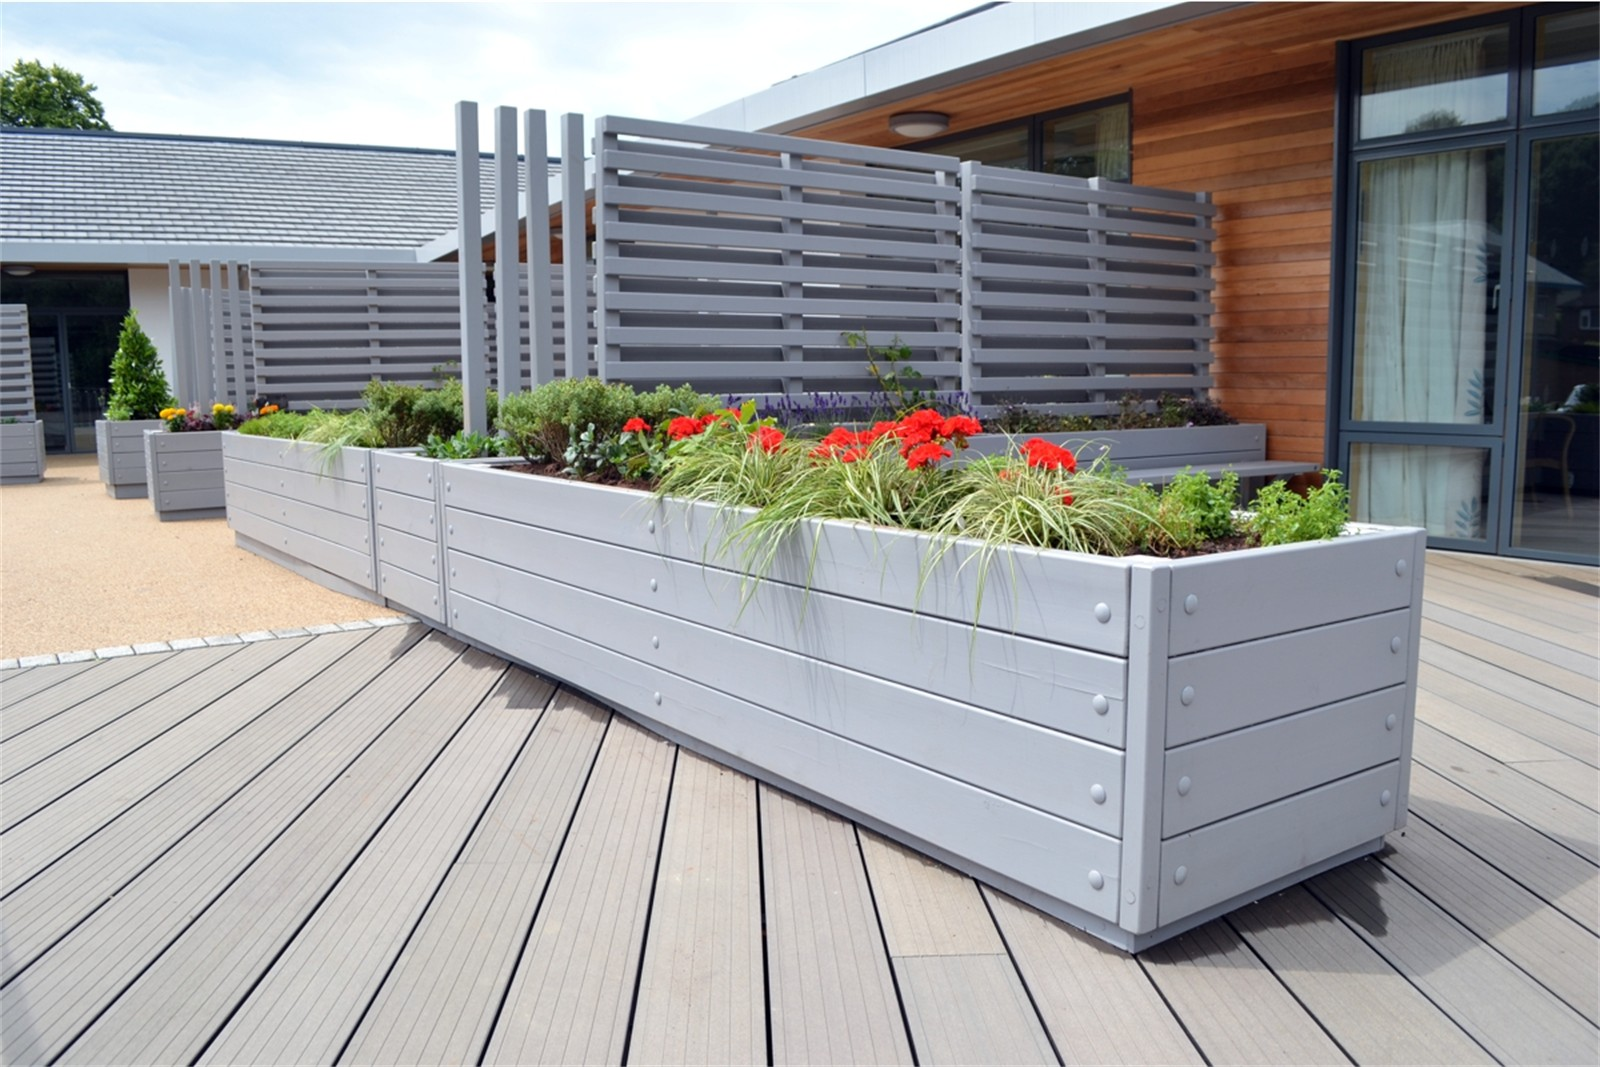 40pgr09 - Grenadier barrier planters with slatted screens